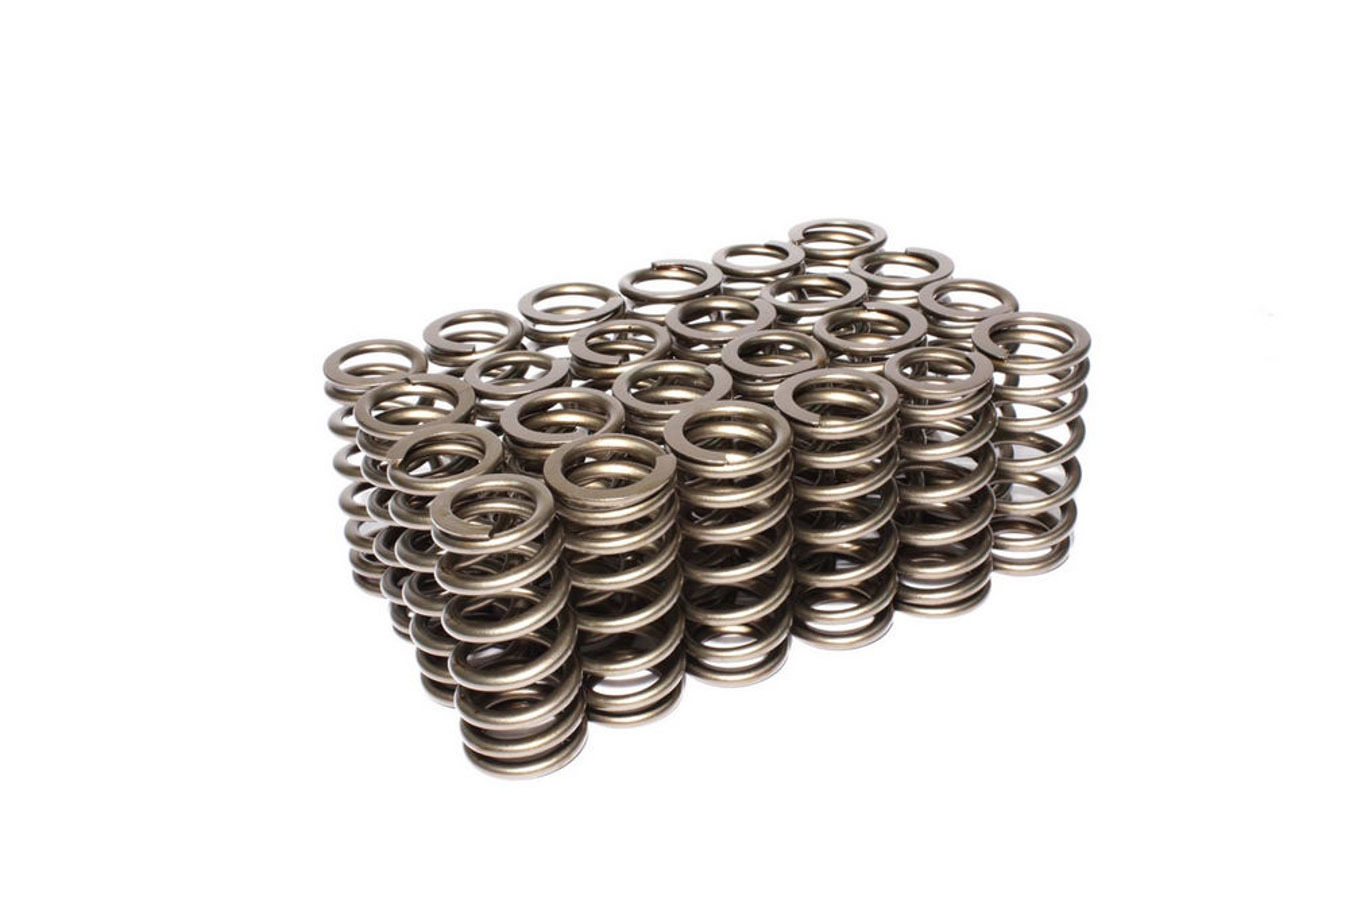 Comp Cams 26113-24 Valve Spring, Performance Street, Beehive Spring, 191 lb/in Spring Rate, 0.952 in Coil Bind, 1.061 in OD, Set of 24